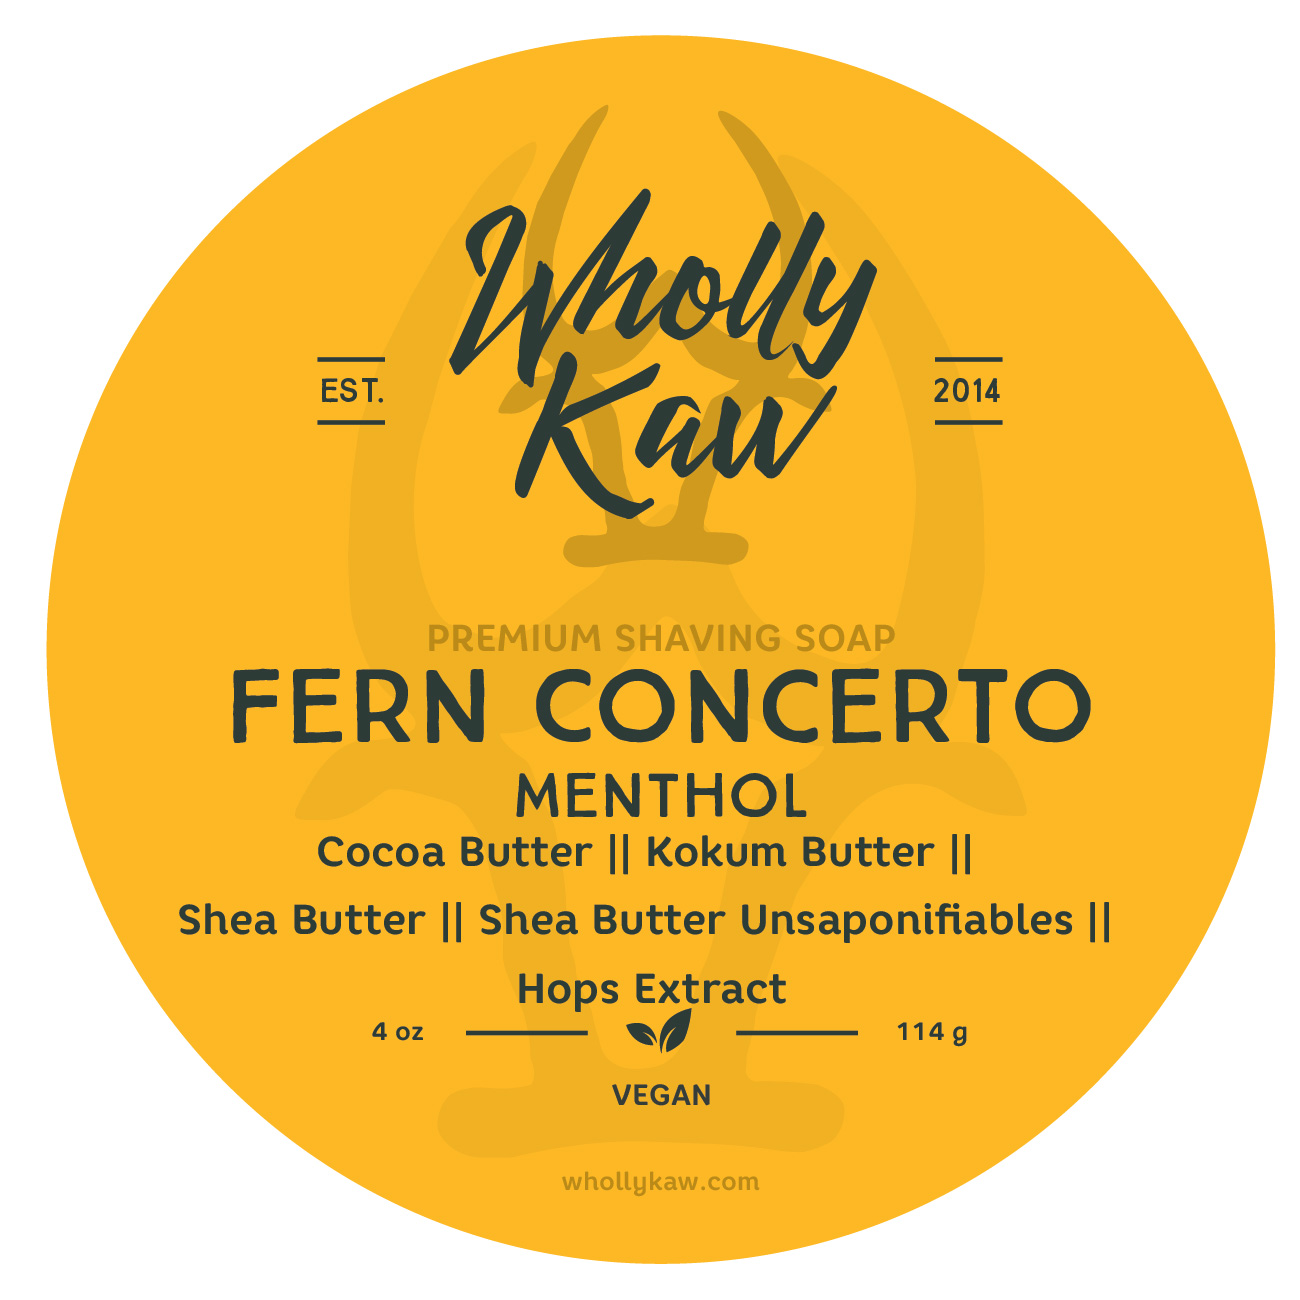 Wholly Kaw - Fern Concerto (Mentholated) - Soap (Vegan) image